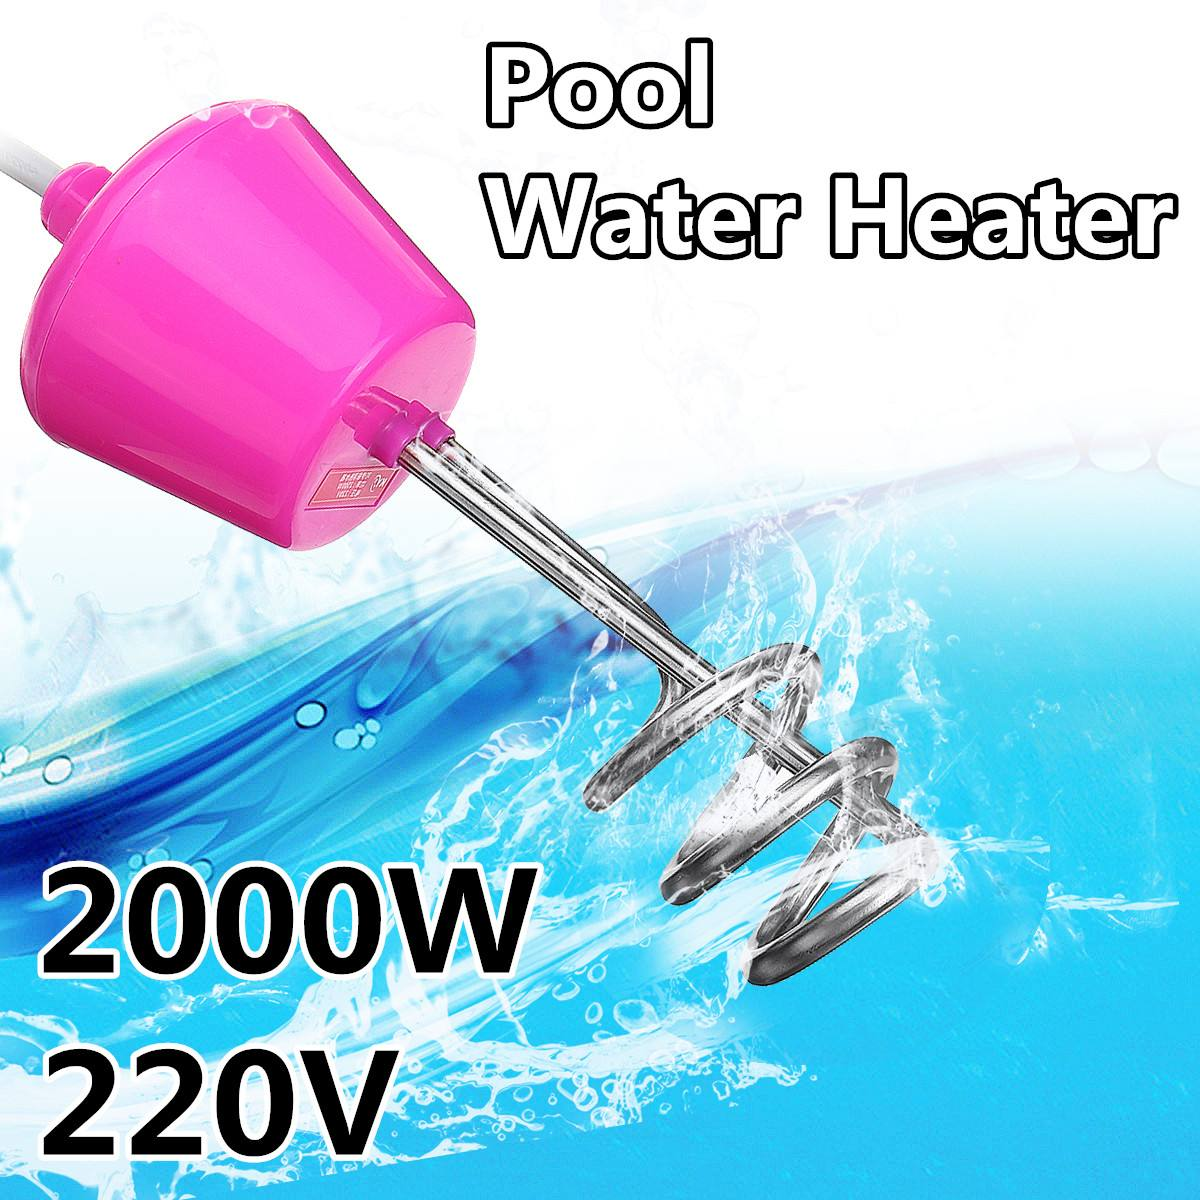 2000W Bathroom Swimming Pool Floating Electric Heater Boiler Water Heating Element Portable Immersion Suspension UK Plug